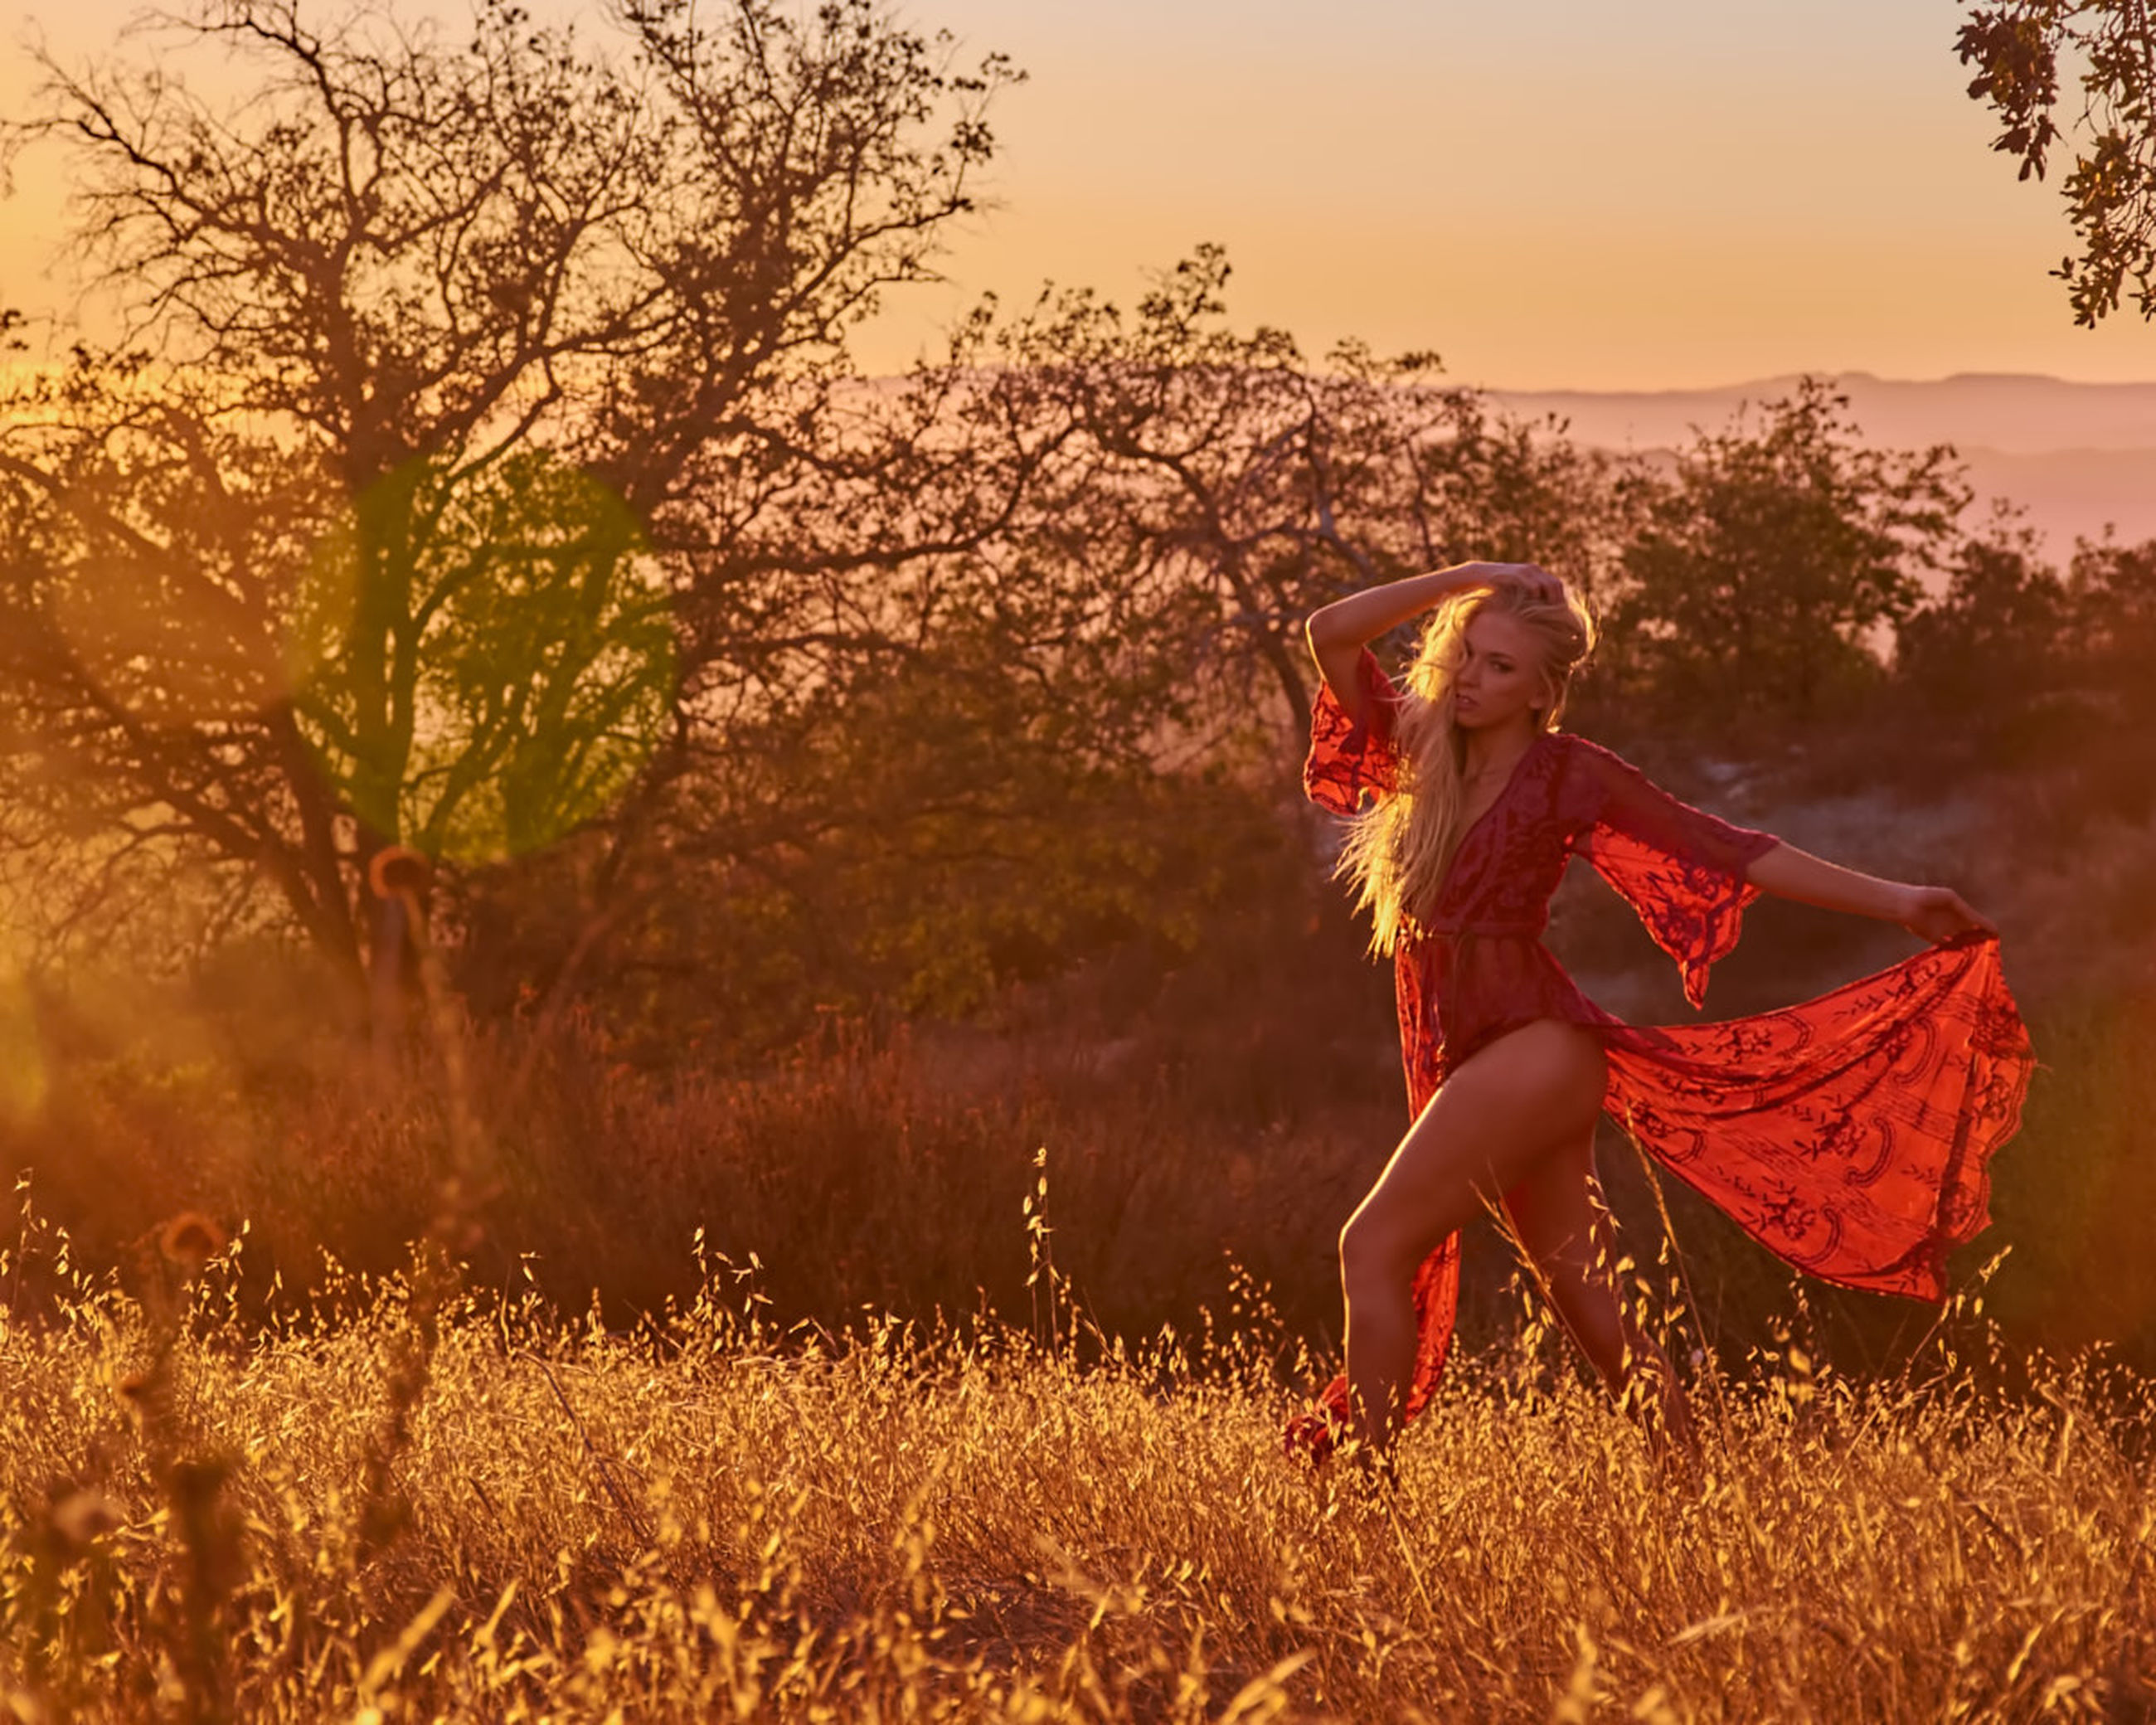 plant, leisure activity, one person, tree, women, real people, young women, lifestyles, field, land, young adult, clothing, nature, full length, sunset, grass, sky, casual clothing, fashion, beautiful woman, hairstyle, outdoors